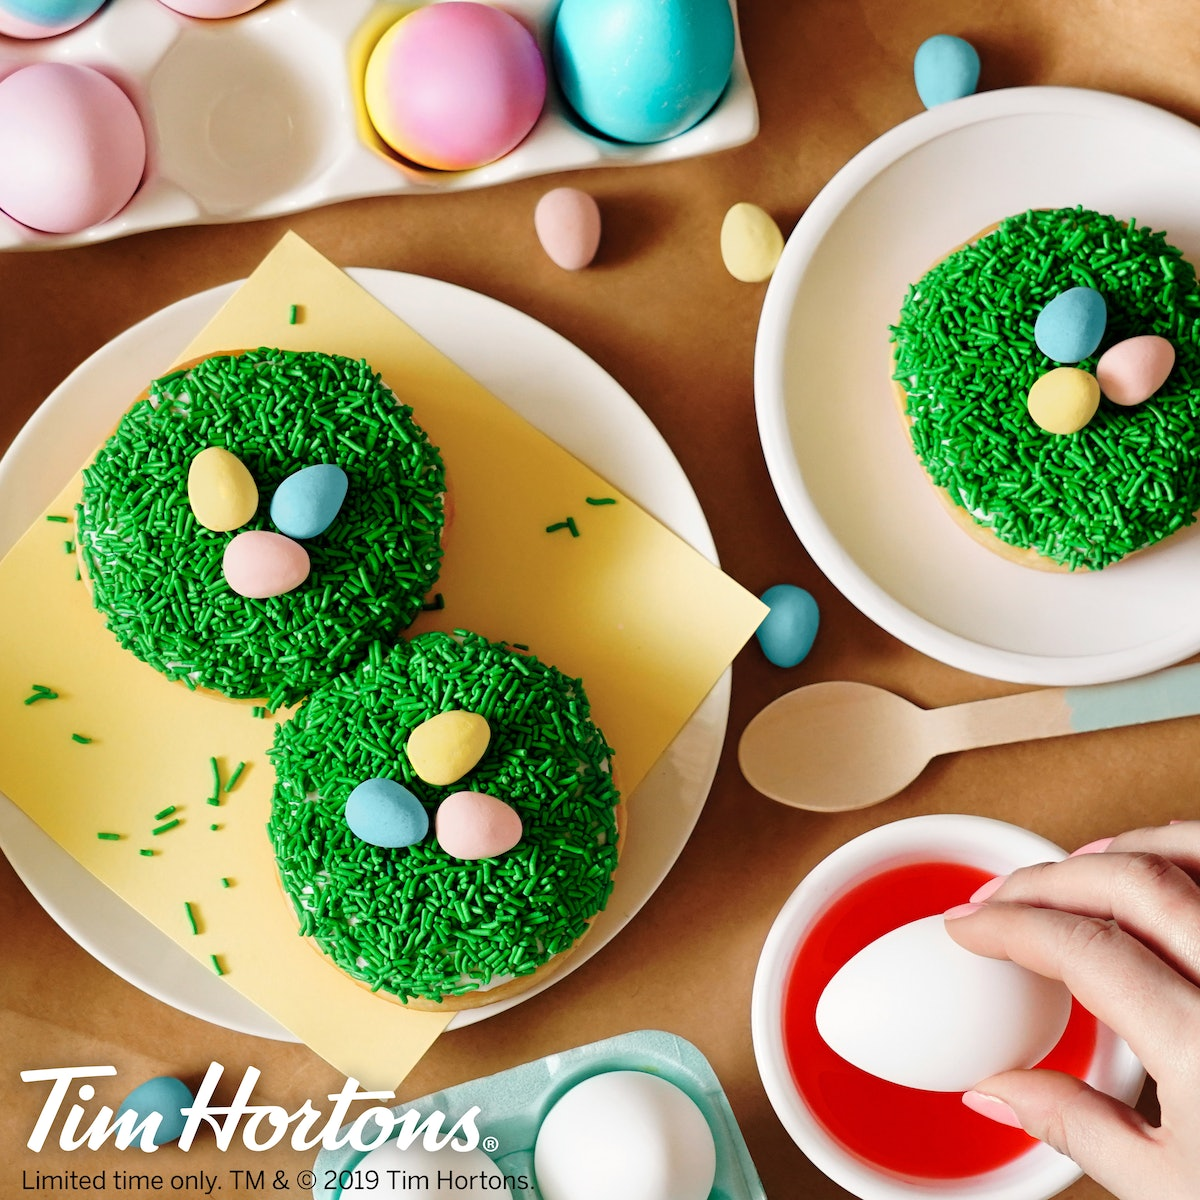 Tim Hortons Launched A Cadbury Mini Egg Donut For Easter & It Is So Precious